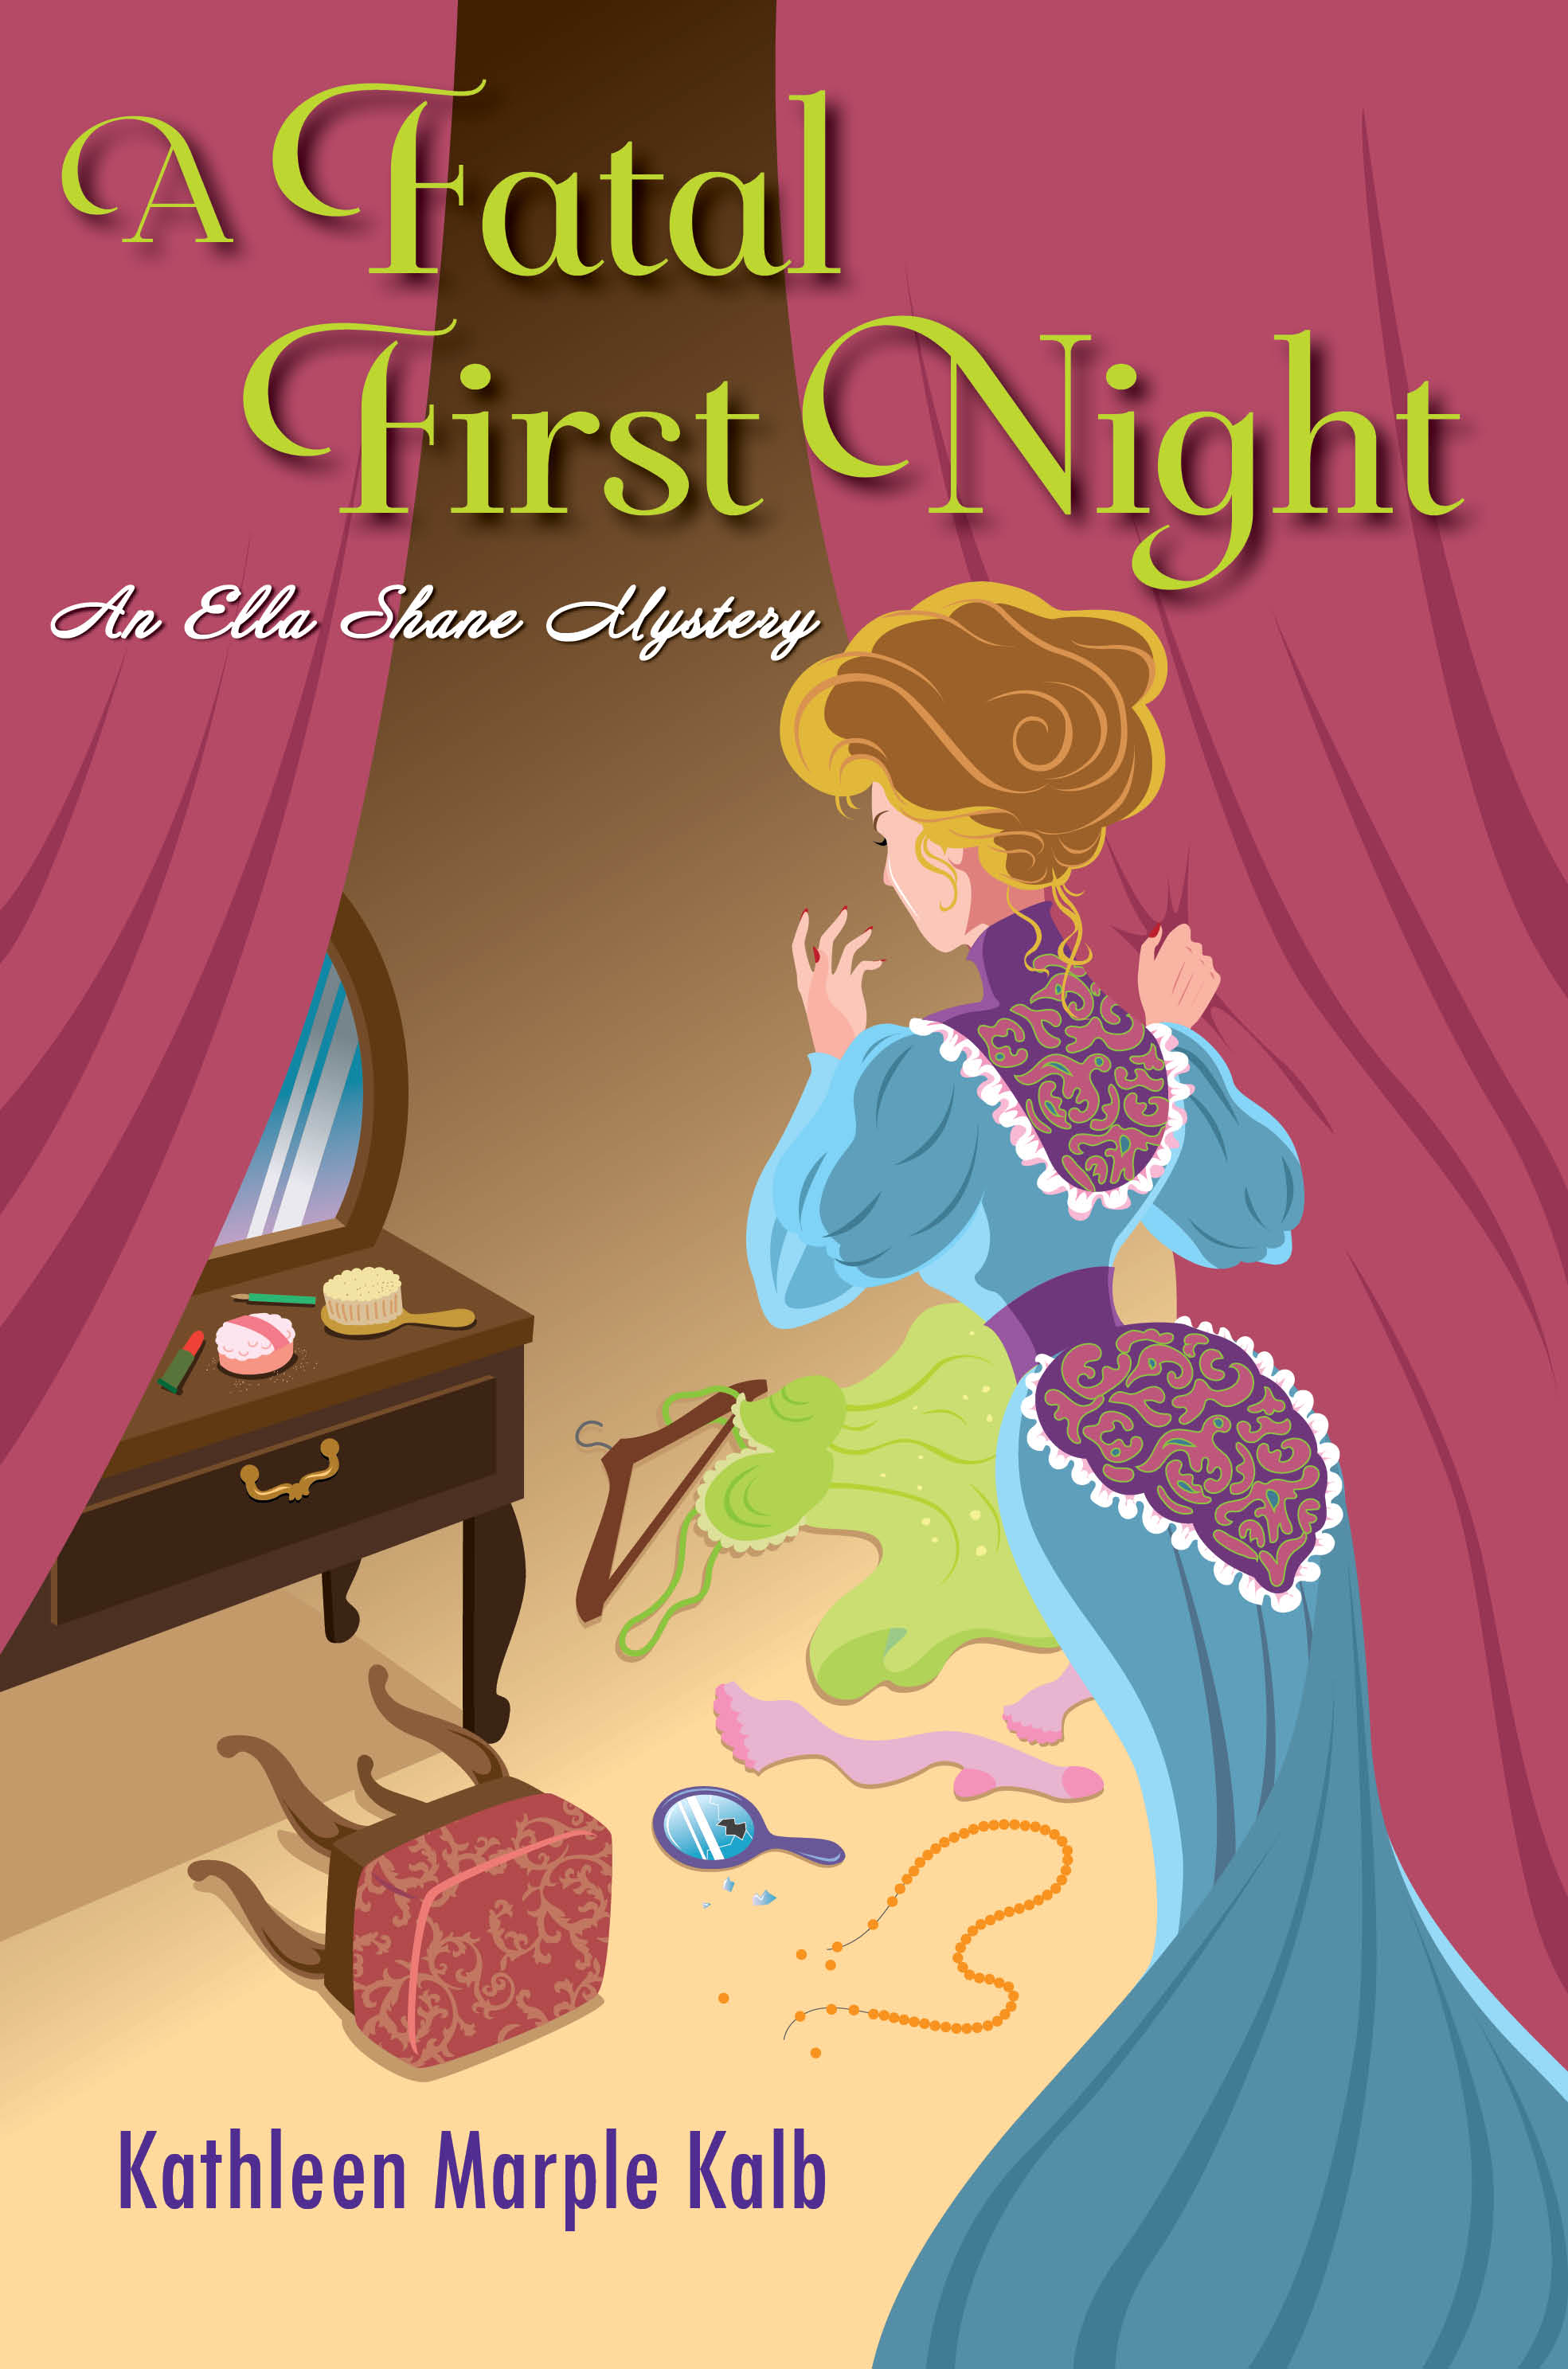 Cheshire Author Talk: A Fatal First Night